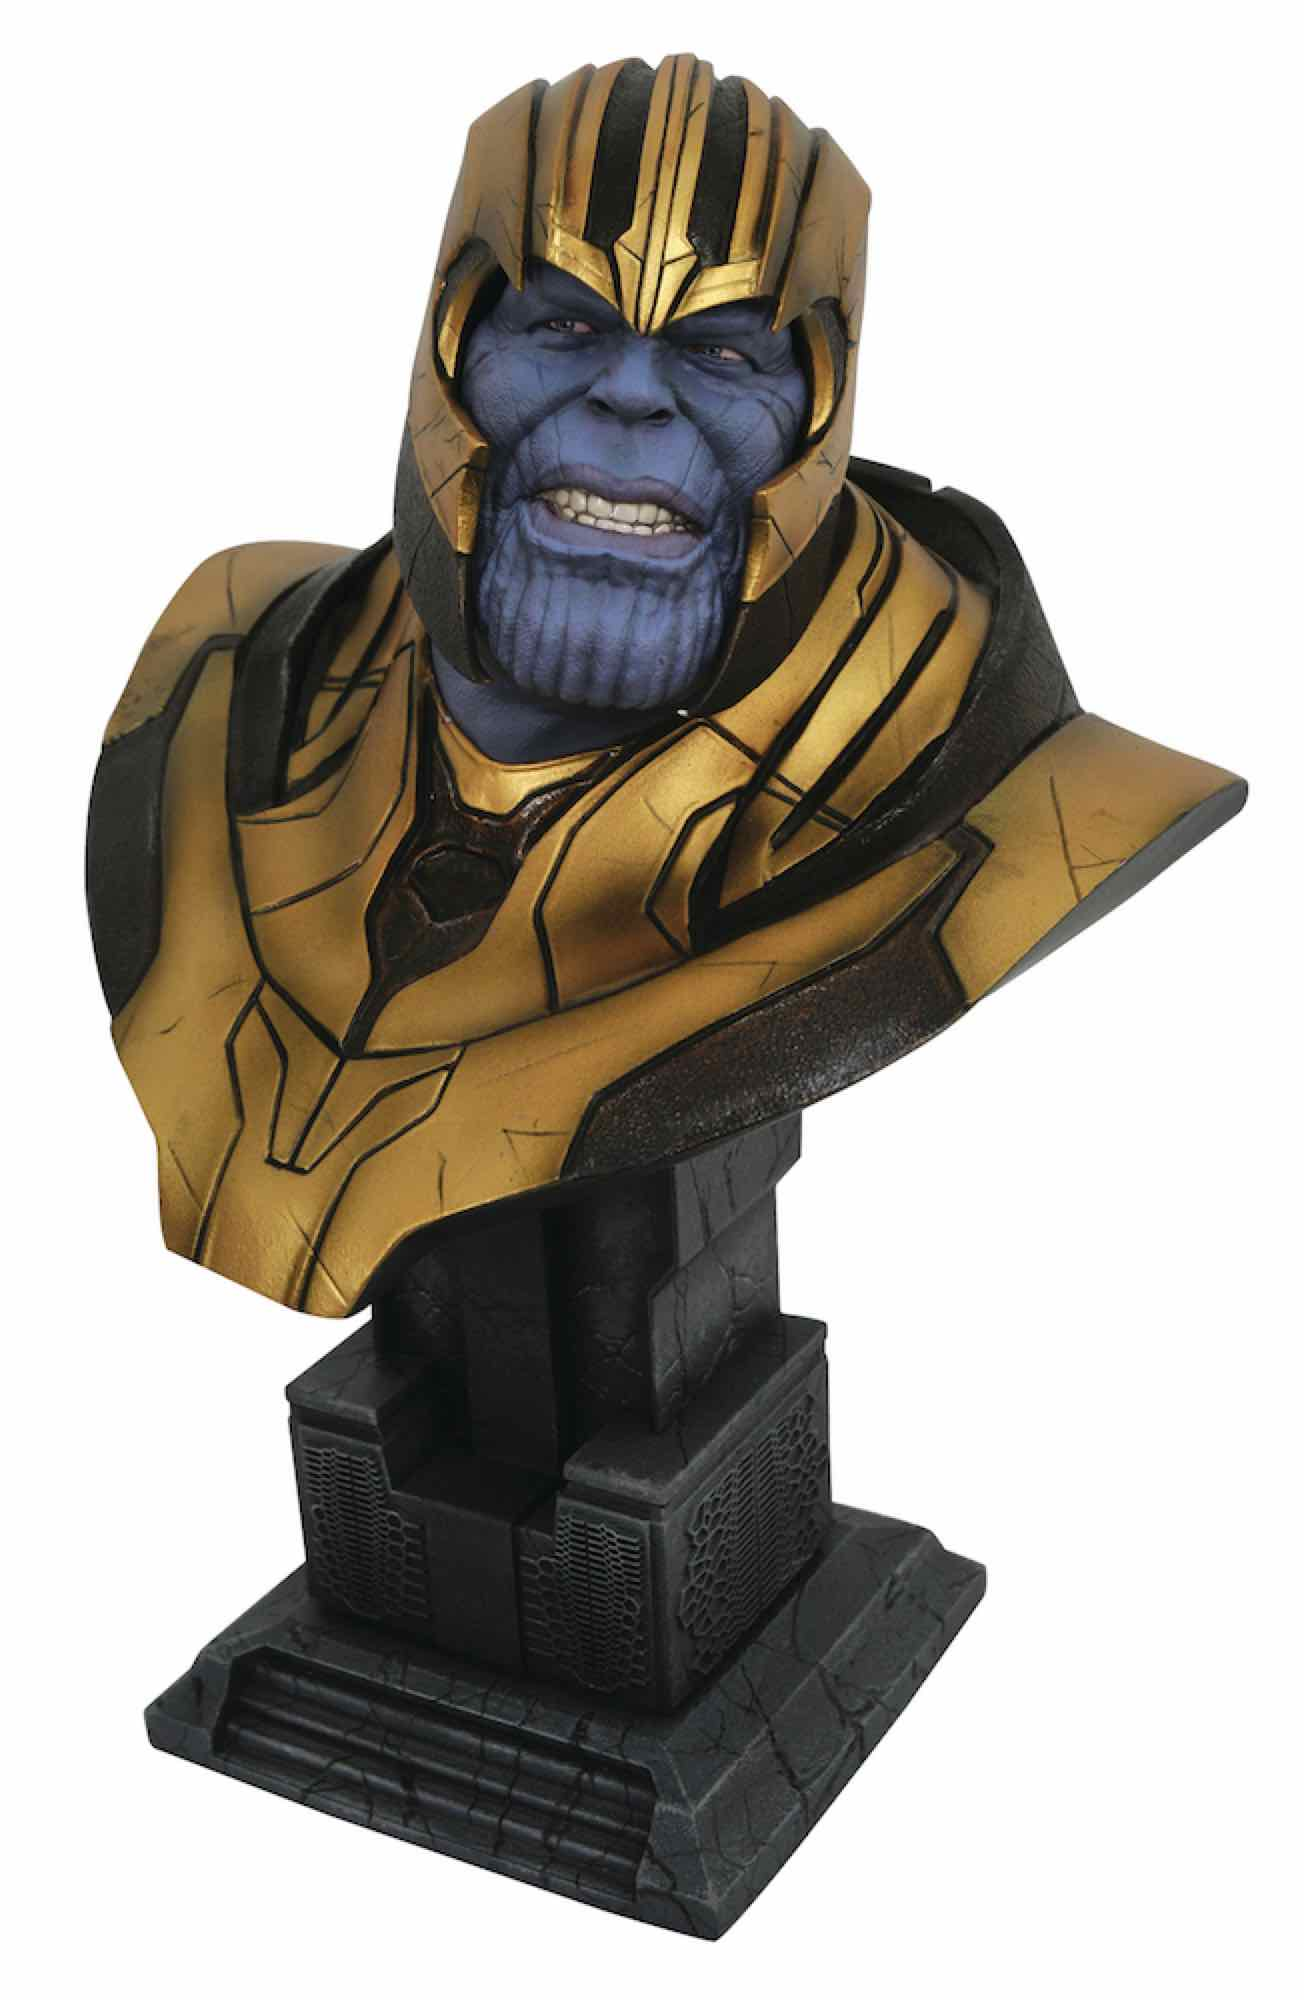 THANOS BUSTO RESINA 28 CM 1/2 SCALE LEGENDS IN 3D MOVIE AVENGERS INFINITY WAR